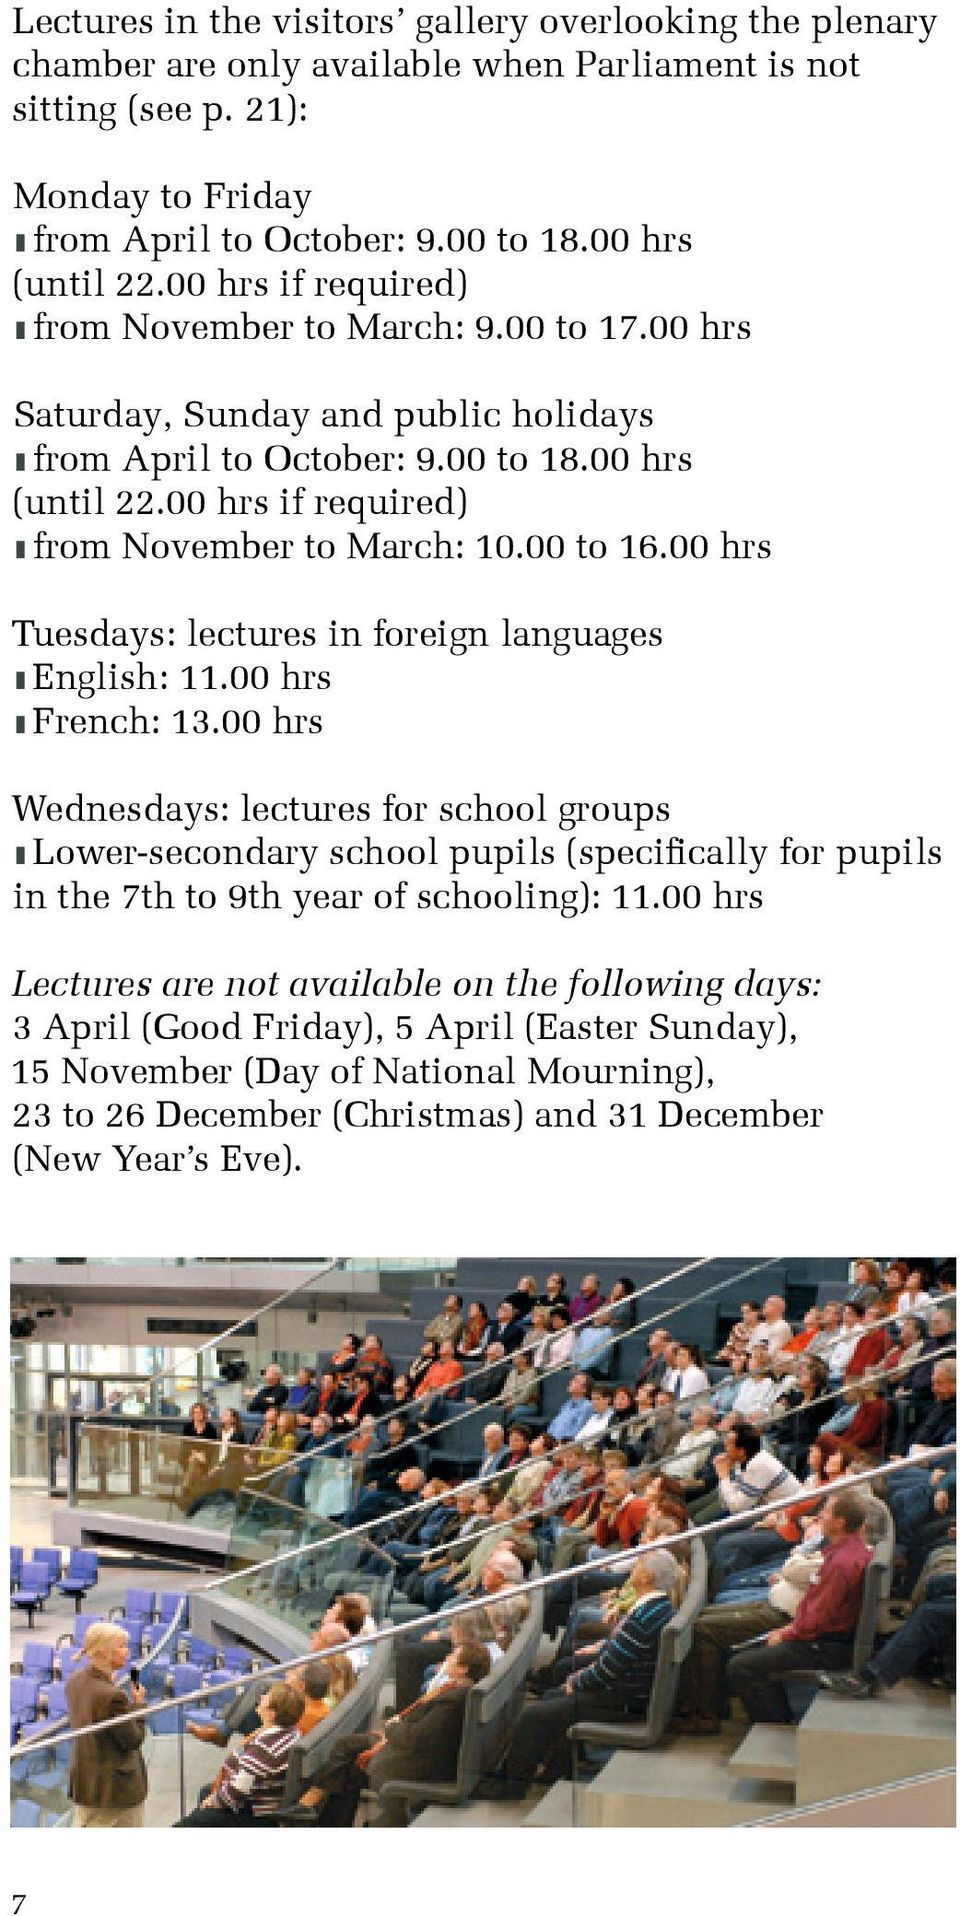 00 hrs if required) z from November to March: 10.00 to 16.00 hrs Tuesdays: lectures in foreign languages z English: 11.00 hrs z French: 13.